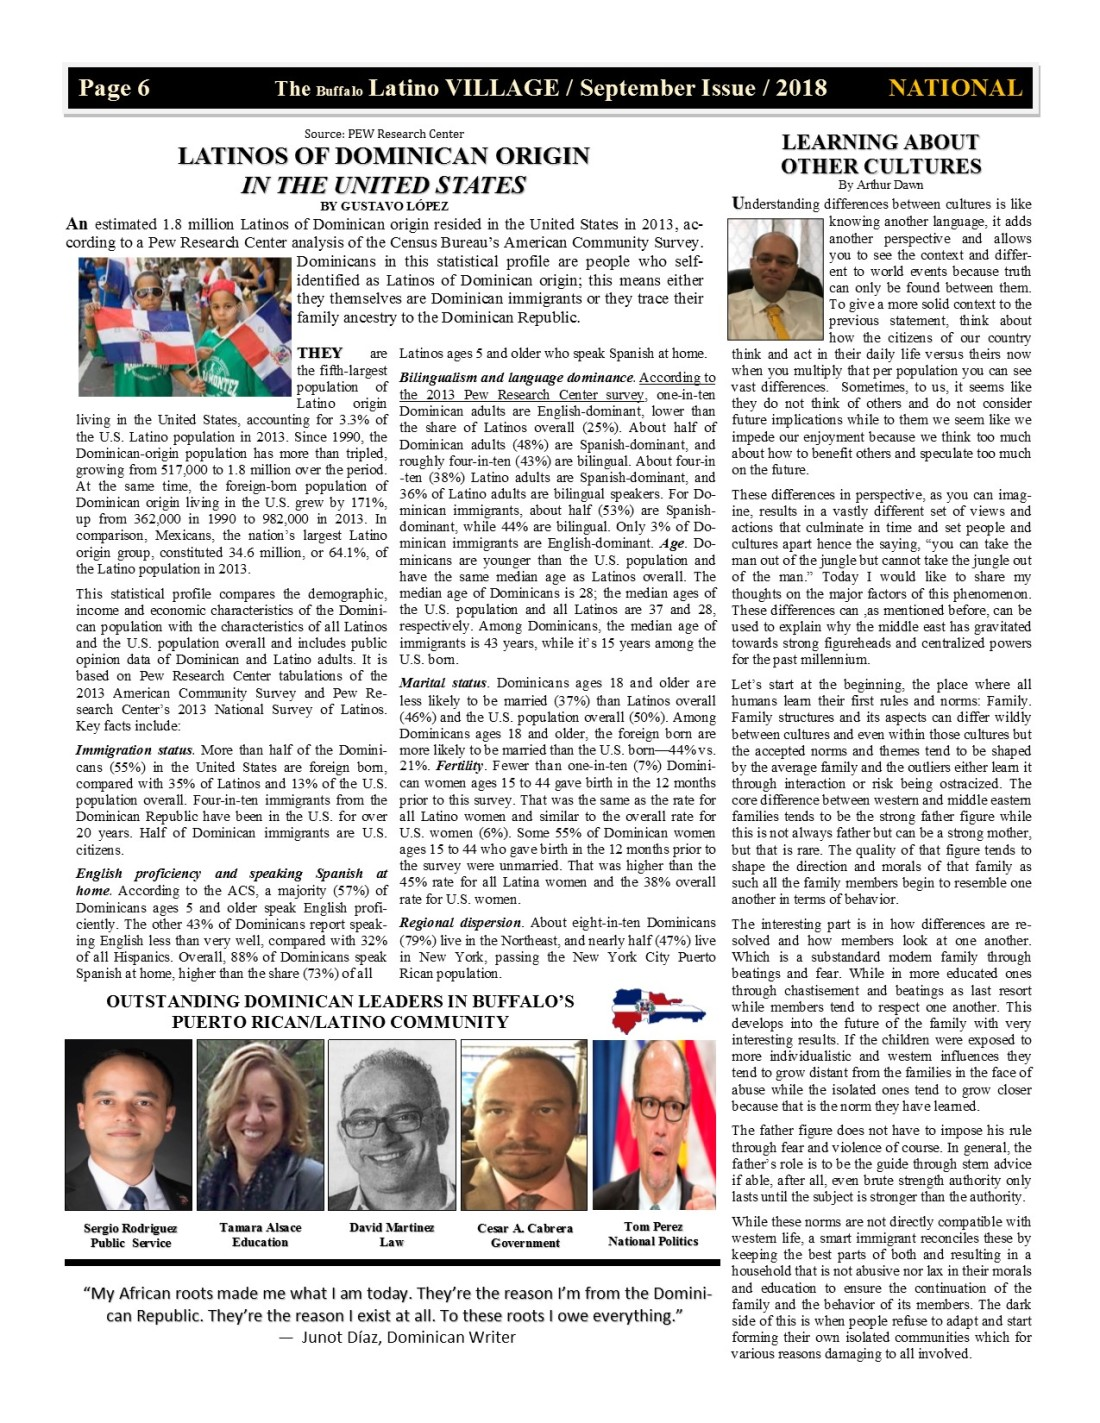 Page 6 Latino Village Newslette September Issue 2018 No. 11